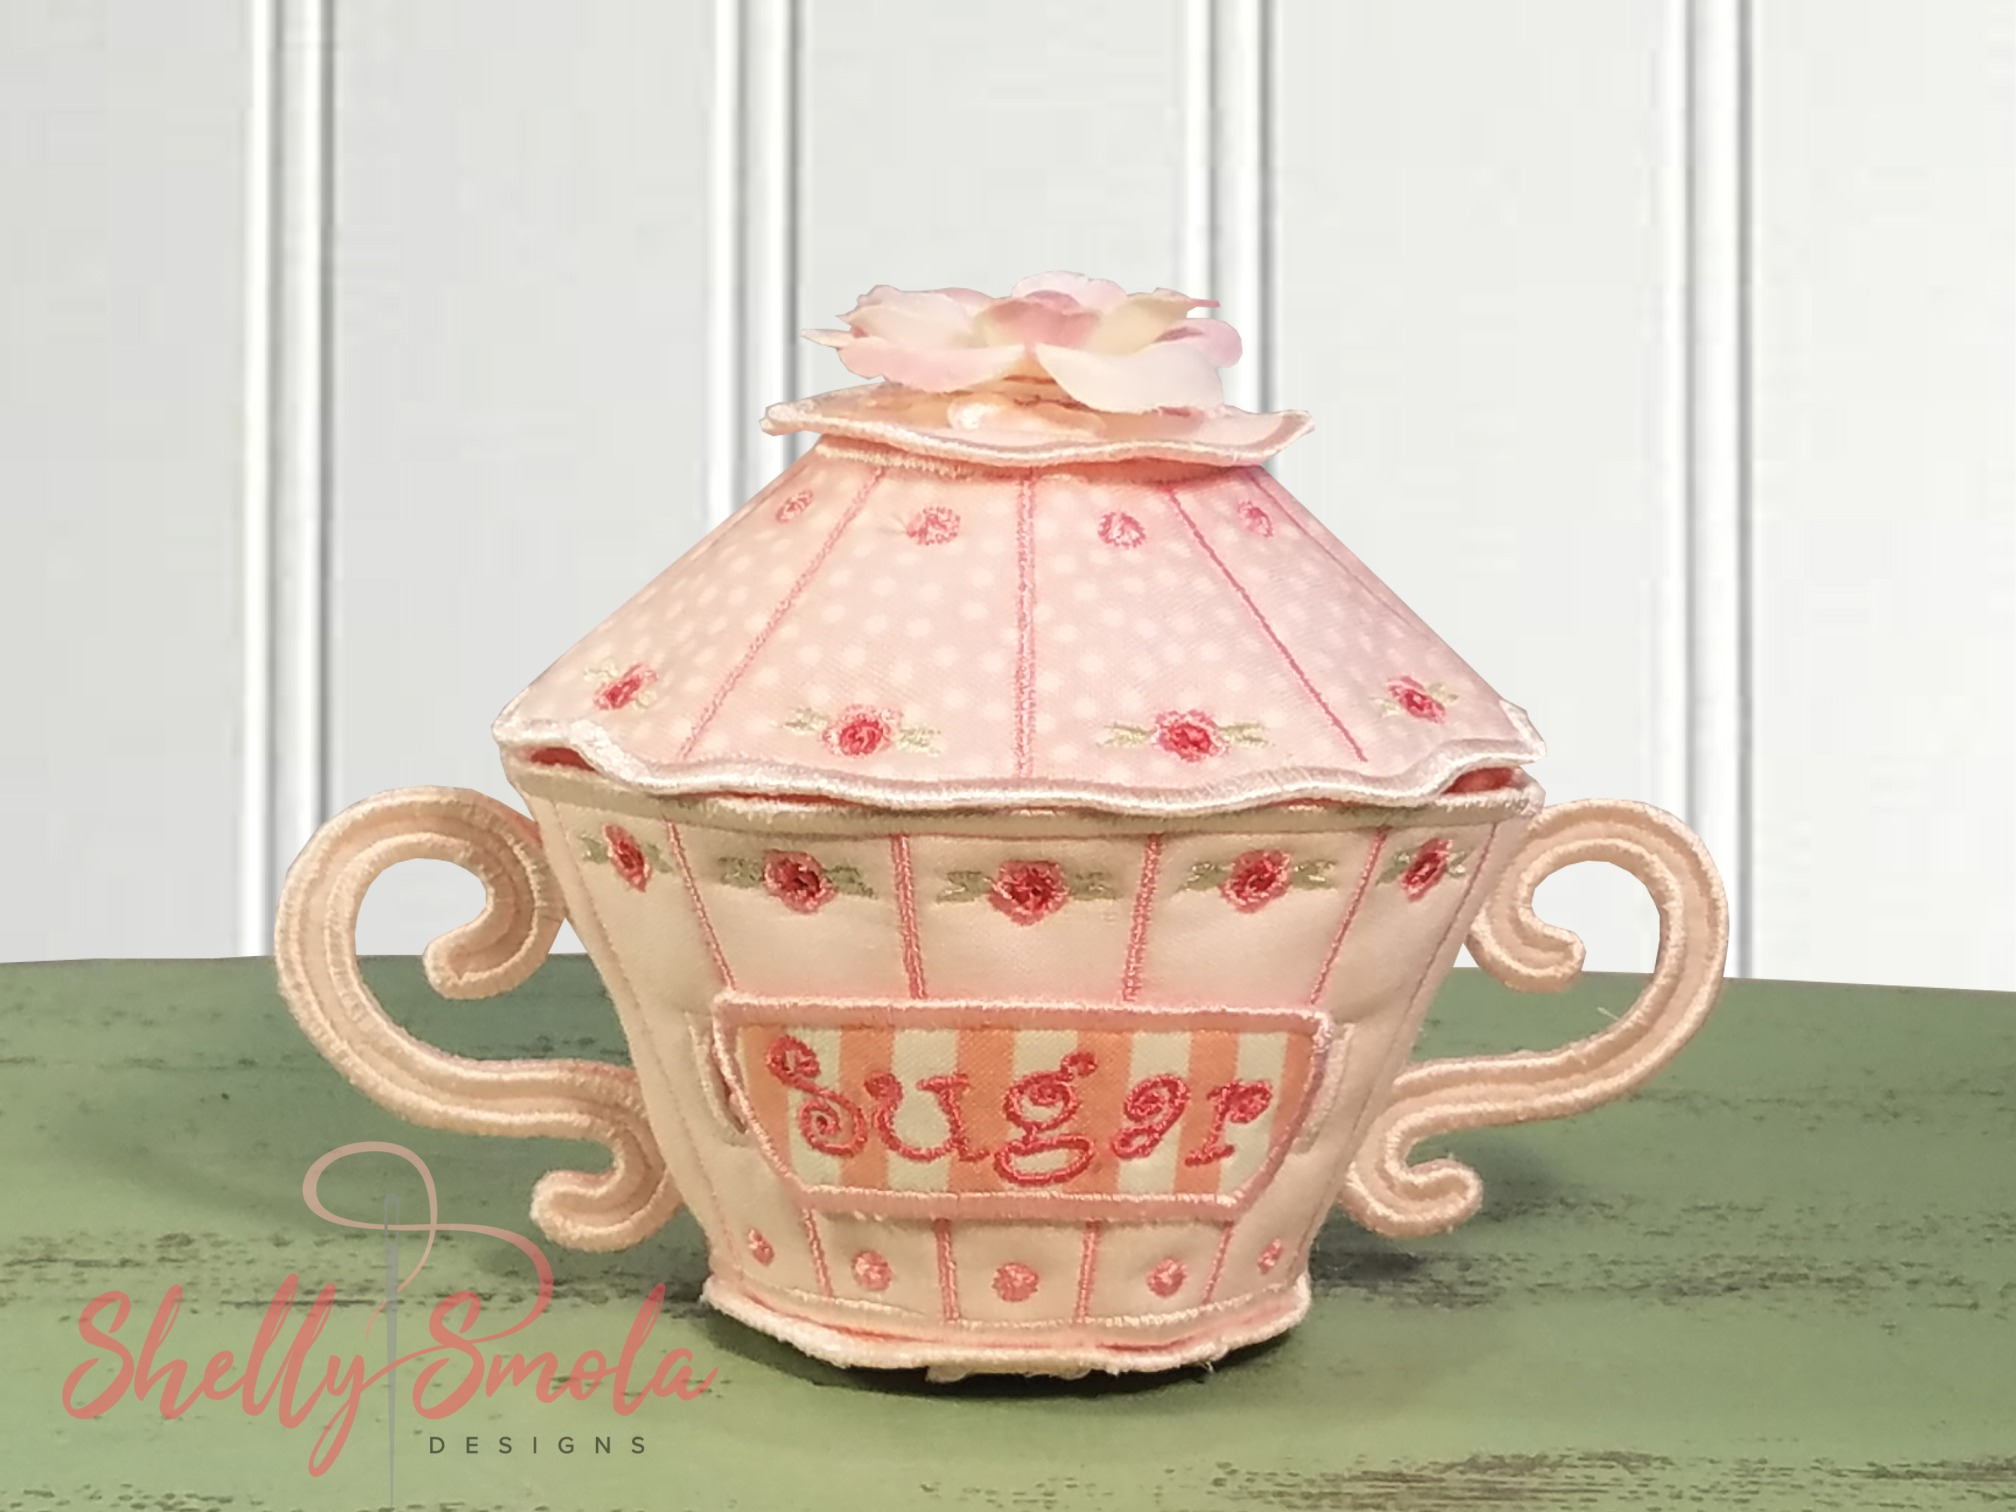 Tea for Two Sugar Dish by Shelly Smola